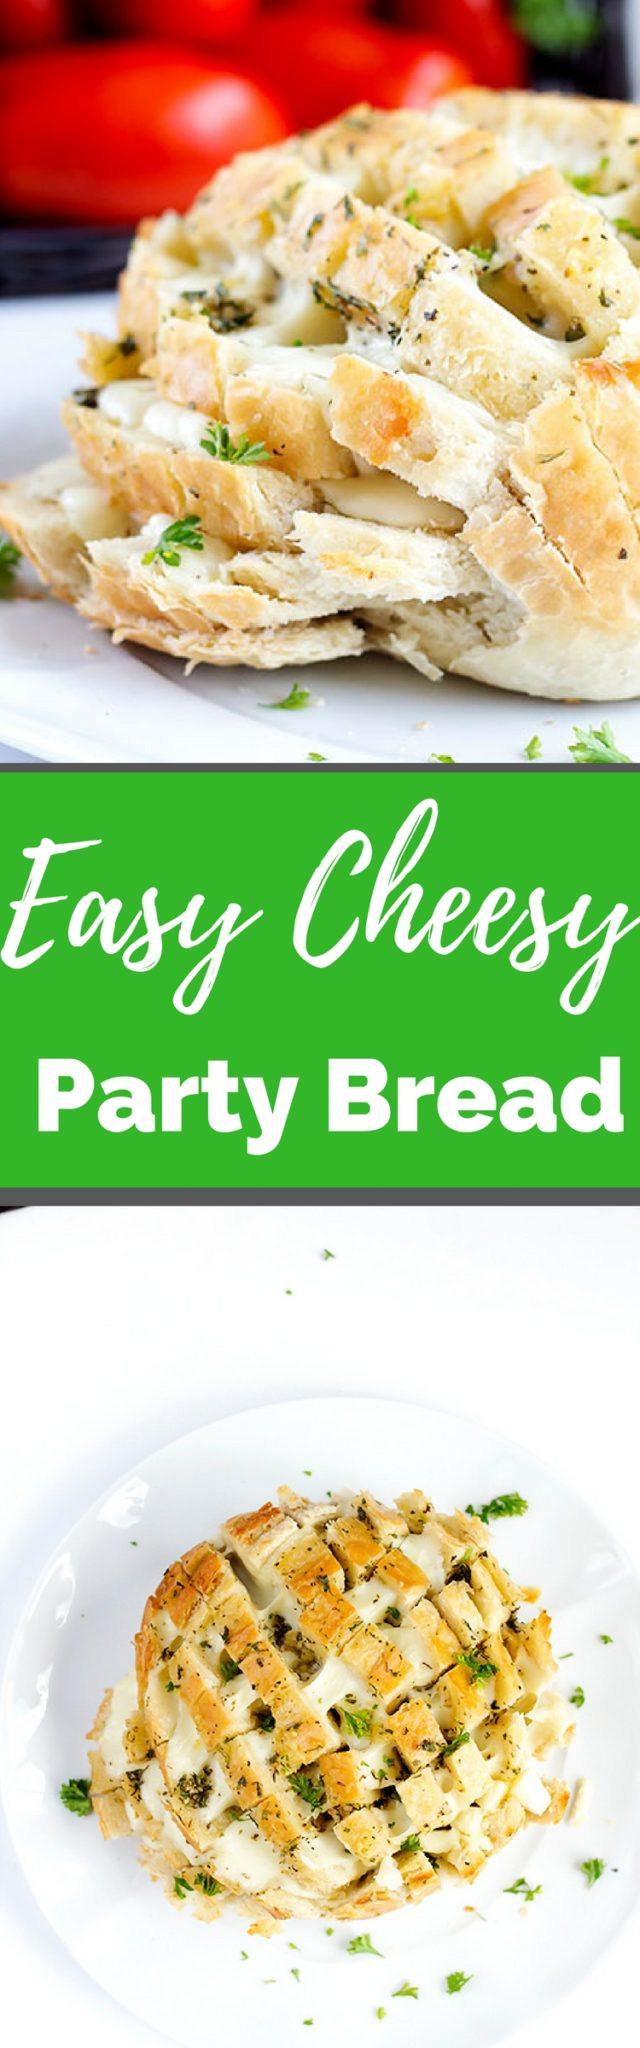 Easy Cheesy Party Bread - Perfect pull apart loaf for sharing. Stuffed with cheese and herbs.